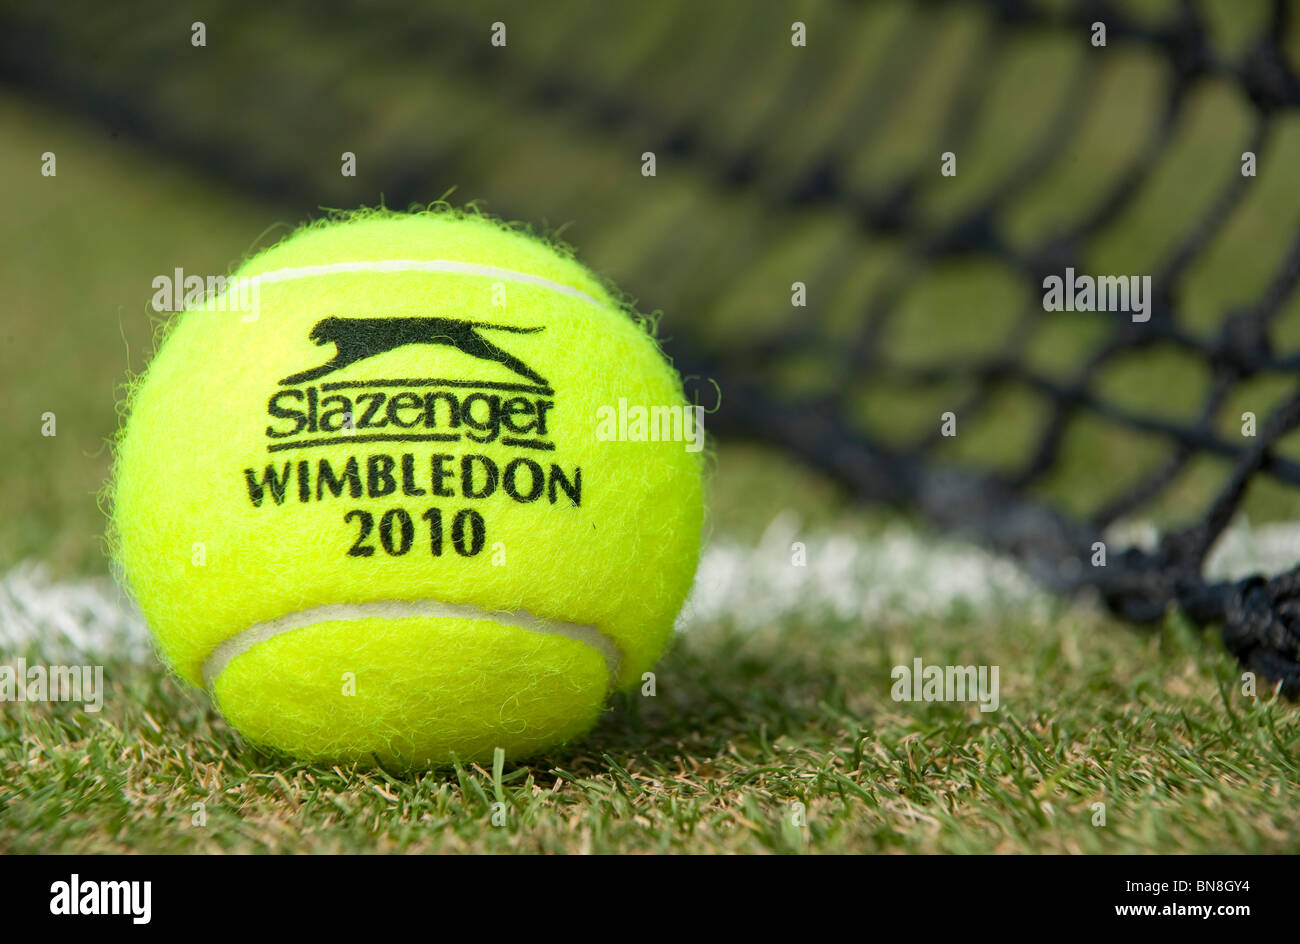 Wimbledon 2010 Slazenger tennis ball sits on a grass court during the Wimbledon Tennis Championships 2010  - Stock Image